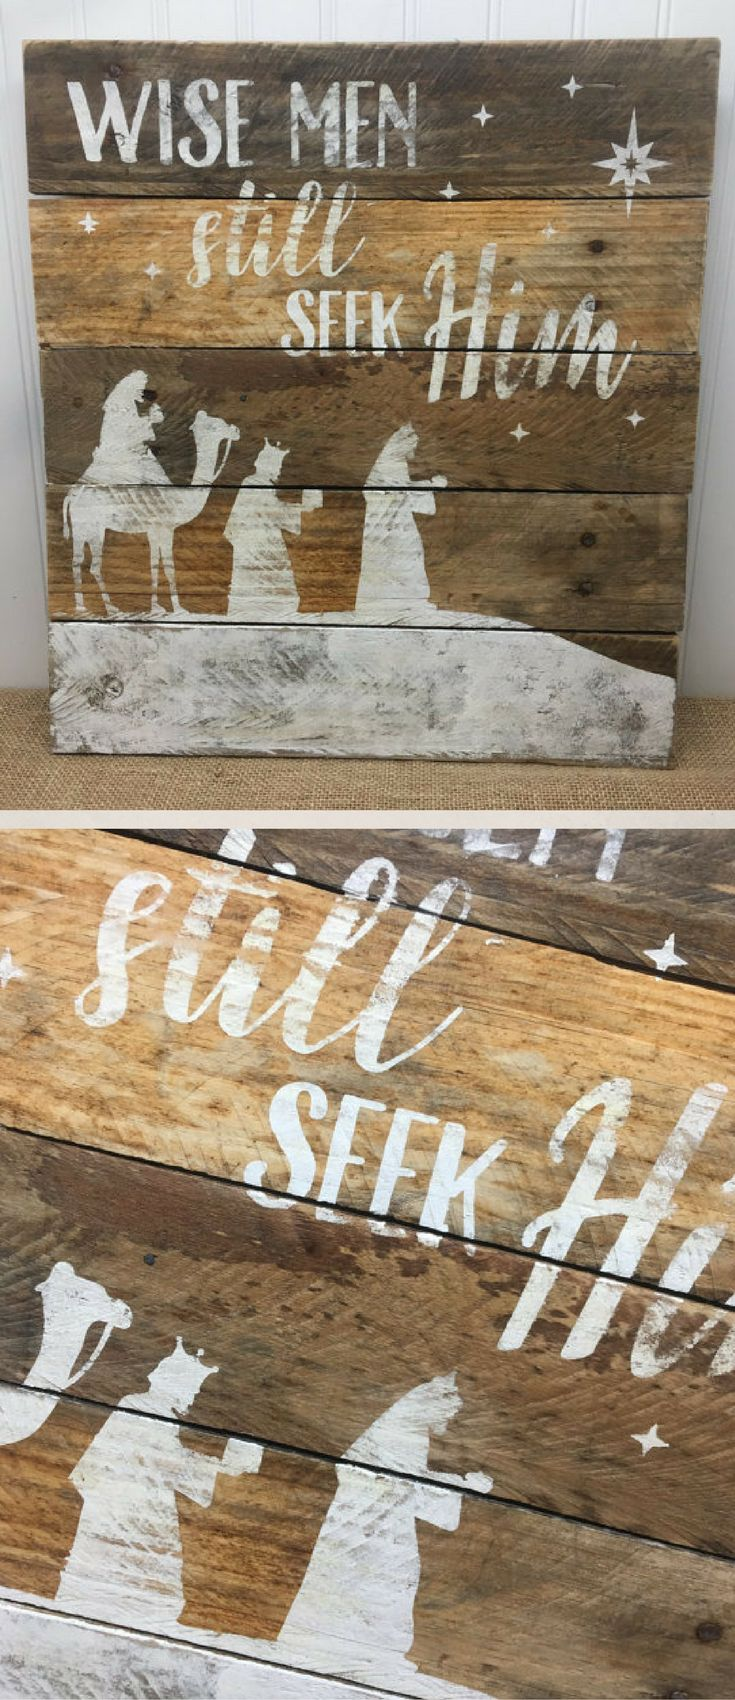 Rustic Pallet Wall Art - Wise Men Still Seek Him Sign - Rustic Christmas Decor - Christmas Gift idea - Wood Wall Sign - Wooden Holiday Sign - Nativity Sign #ad